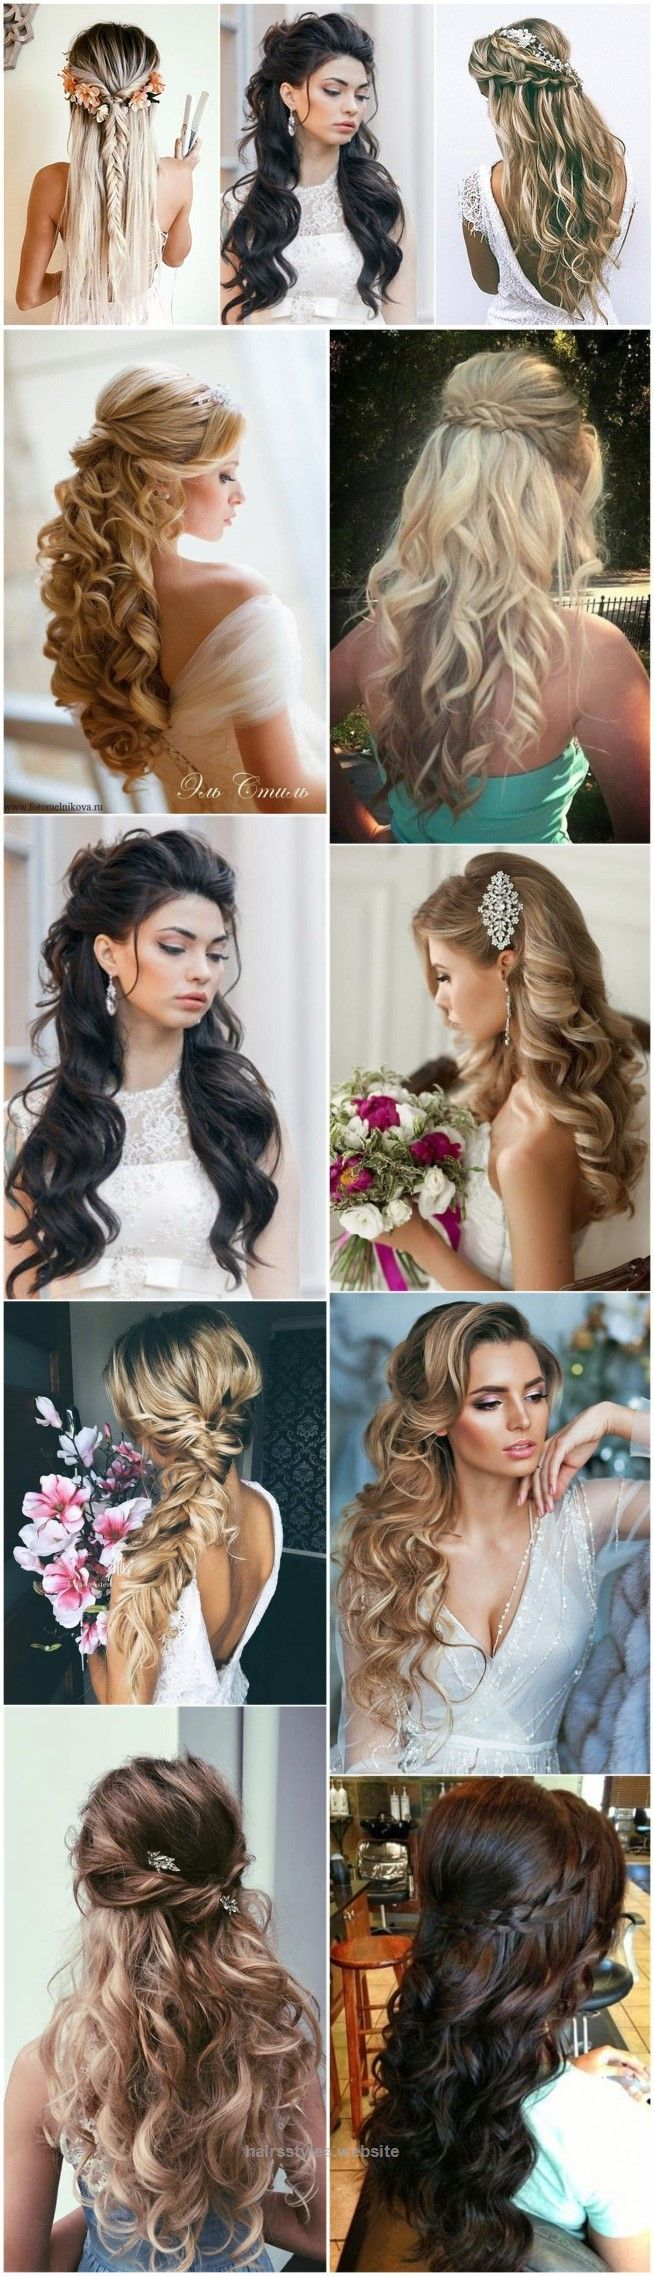 Magnificent Wedding Hairstyles » 18 Creative and Unique Wedding Hairstyles for Long Hair »   See more: www.weddinginclud…  The post  Wedding Hairstyles » 18 Creative and Unique Wedding Hairstyles f ..